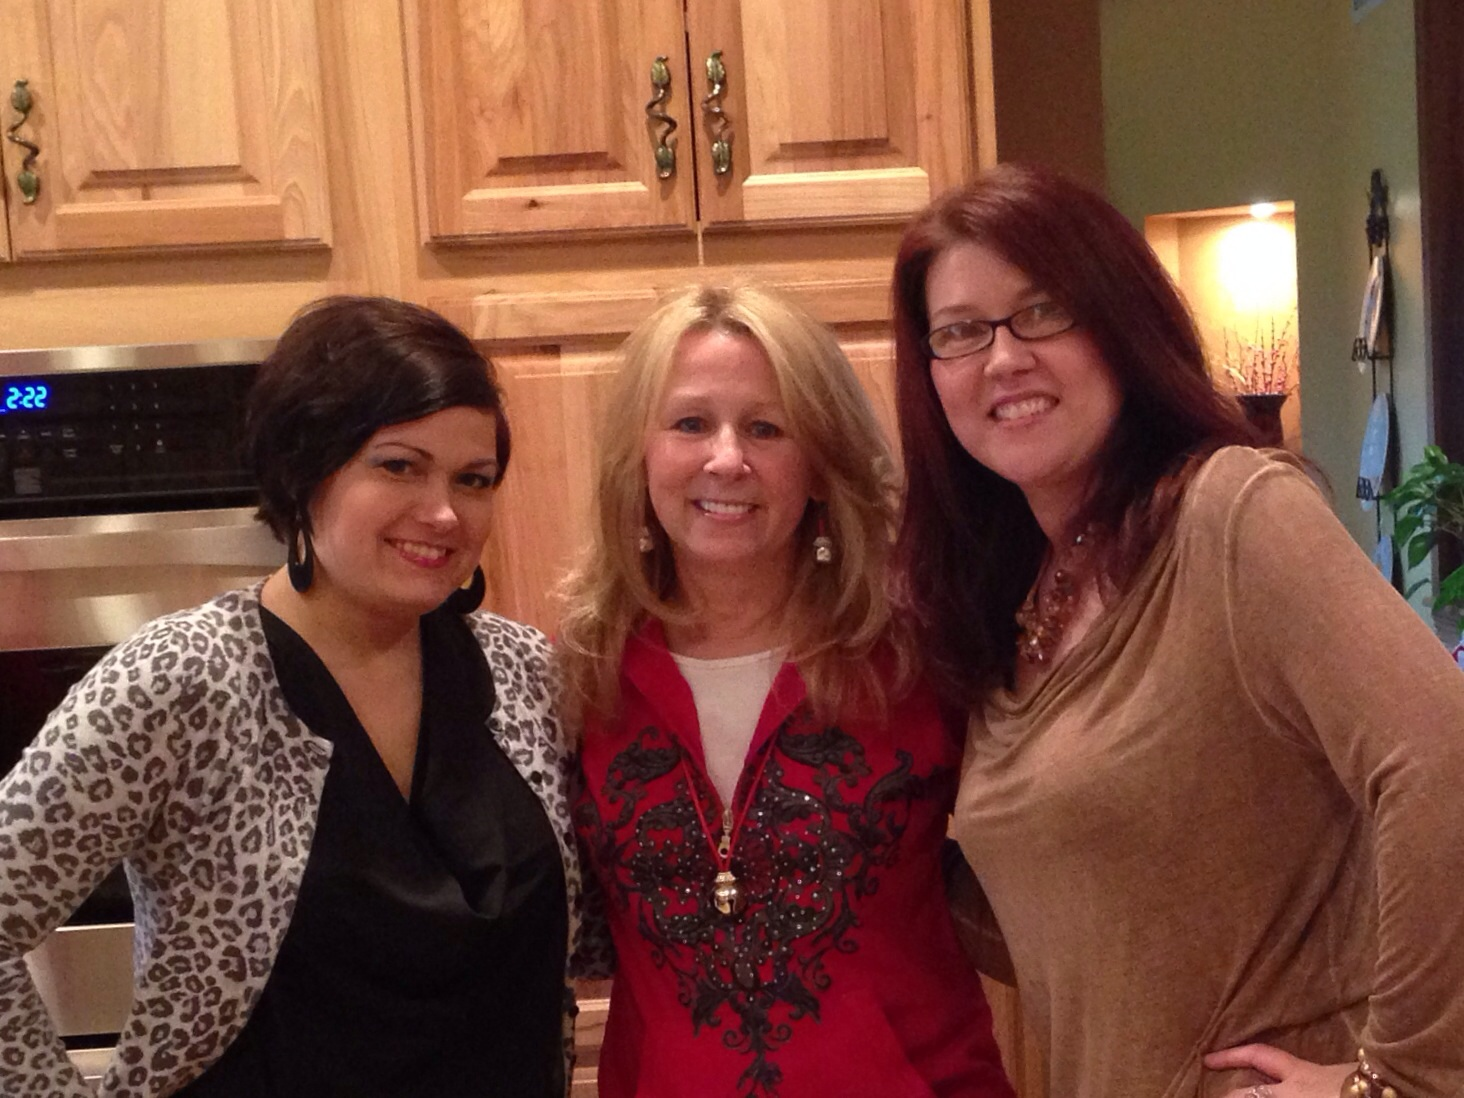 with Jules Bennett and Lori Foster